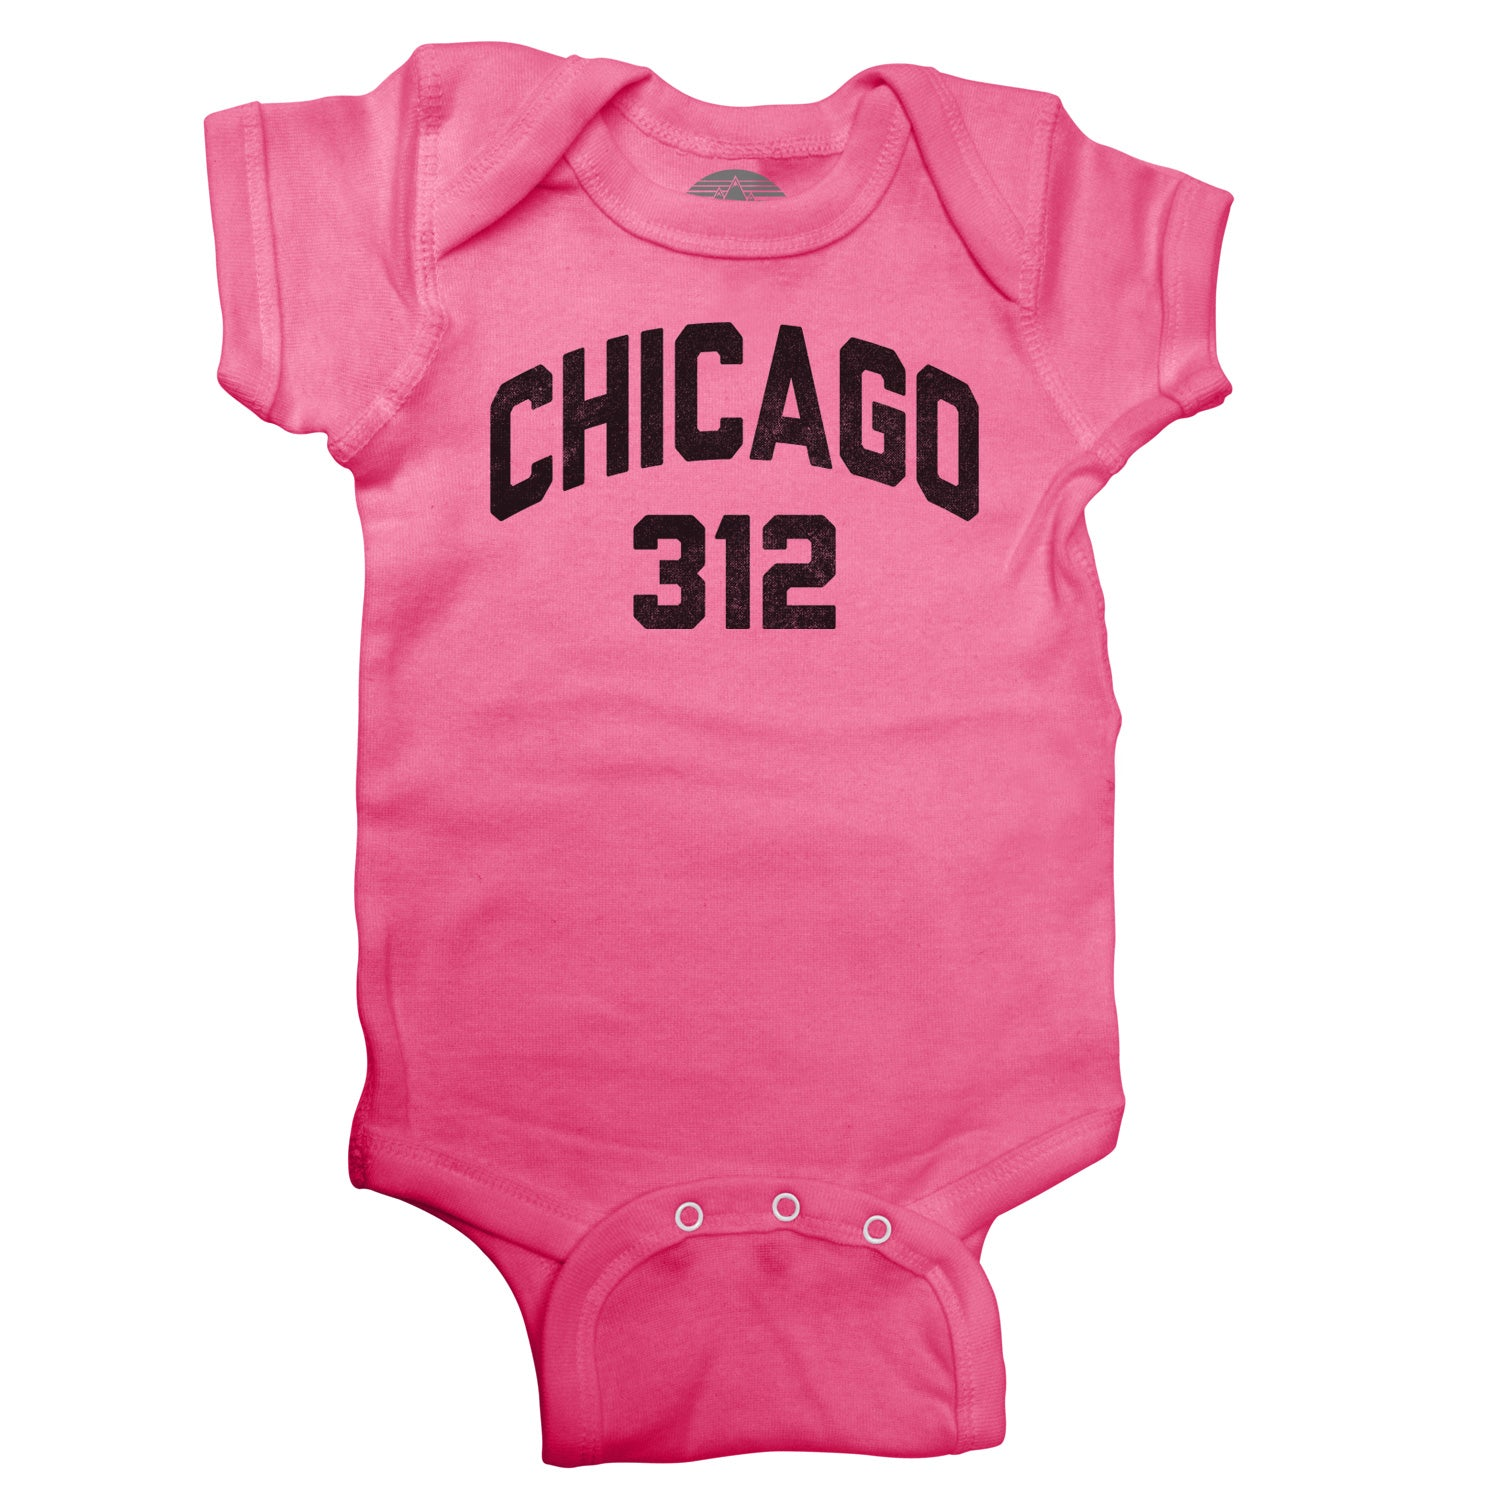 Chicago 312 Area Code Infant Bodysuit - Unisex Fit